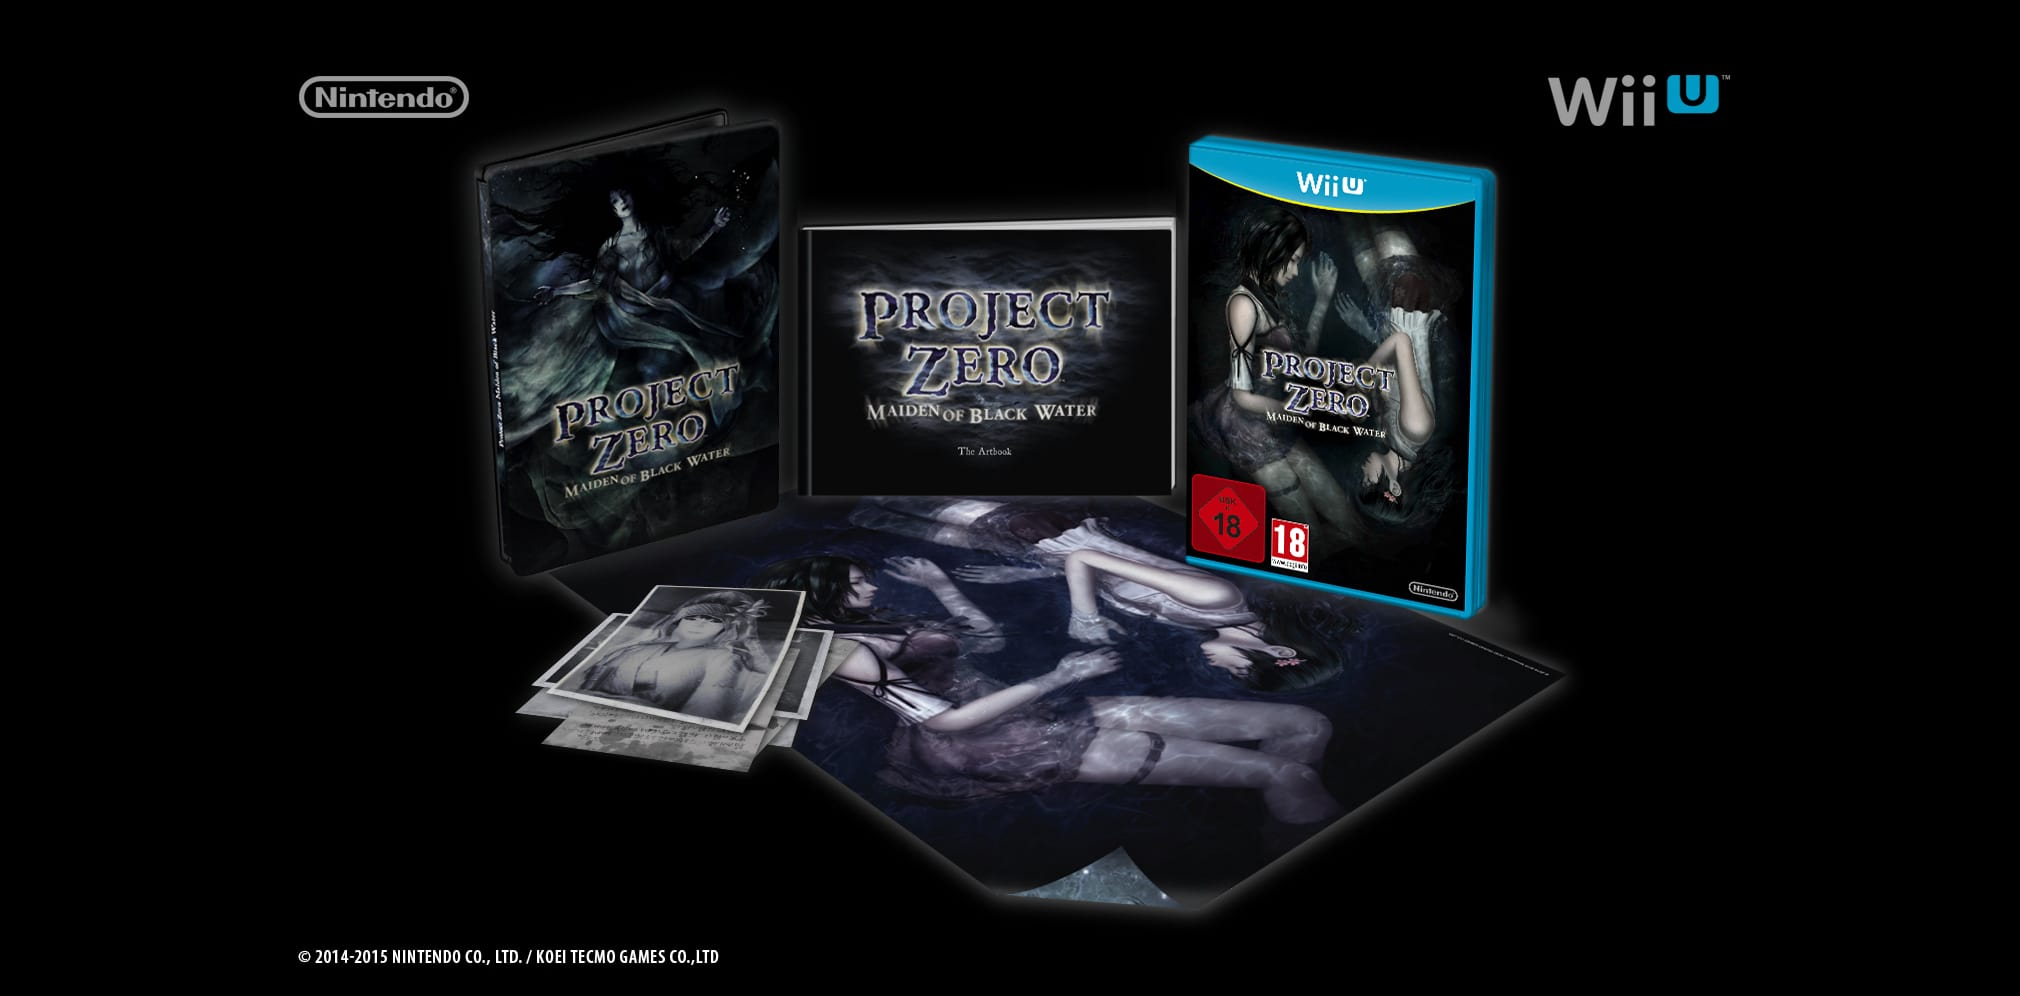 Buy Project Zero: Maiden of Black Water Limited Edition on Wii-U ...